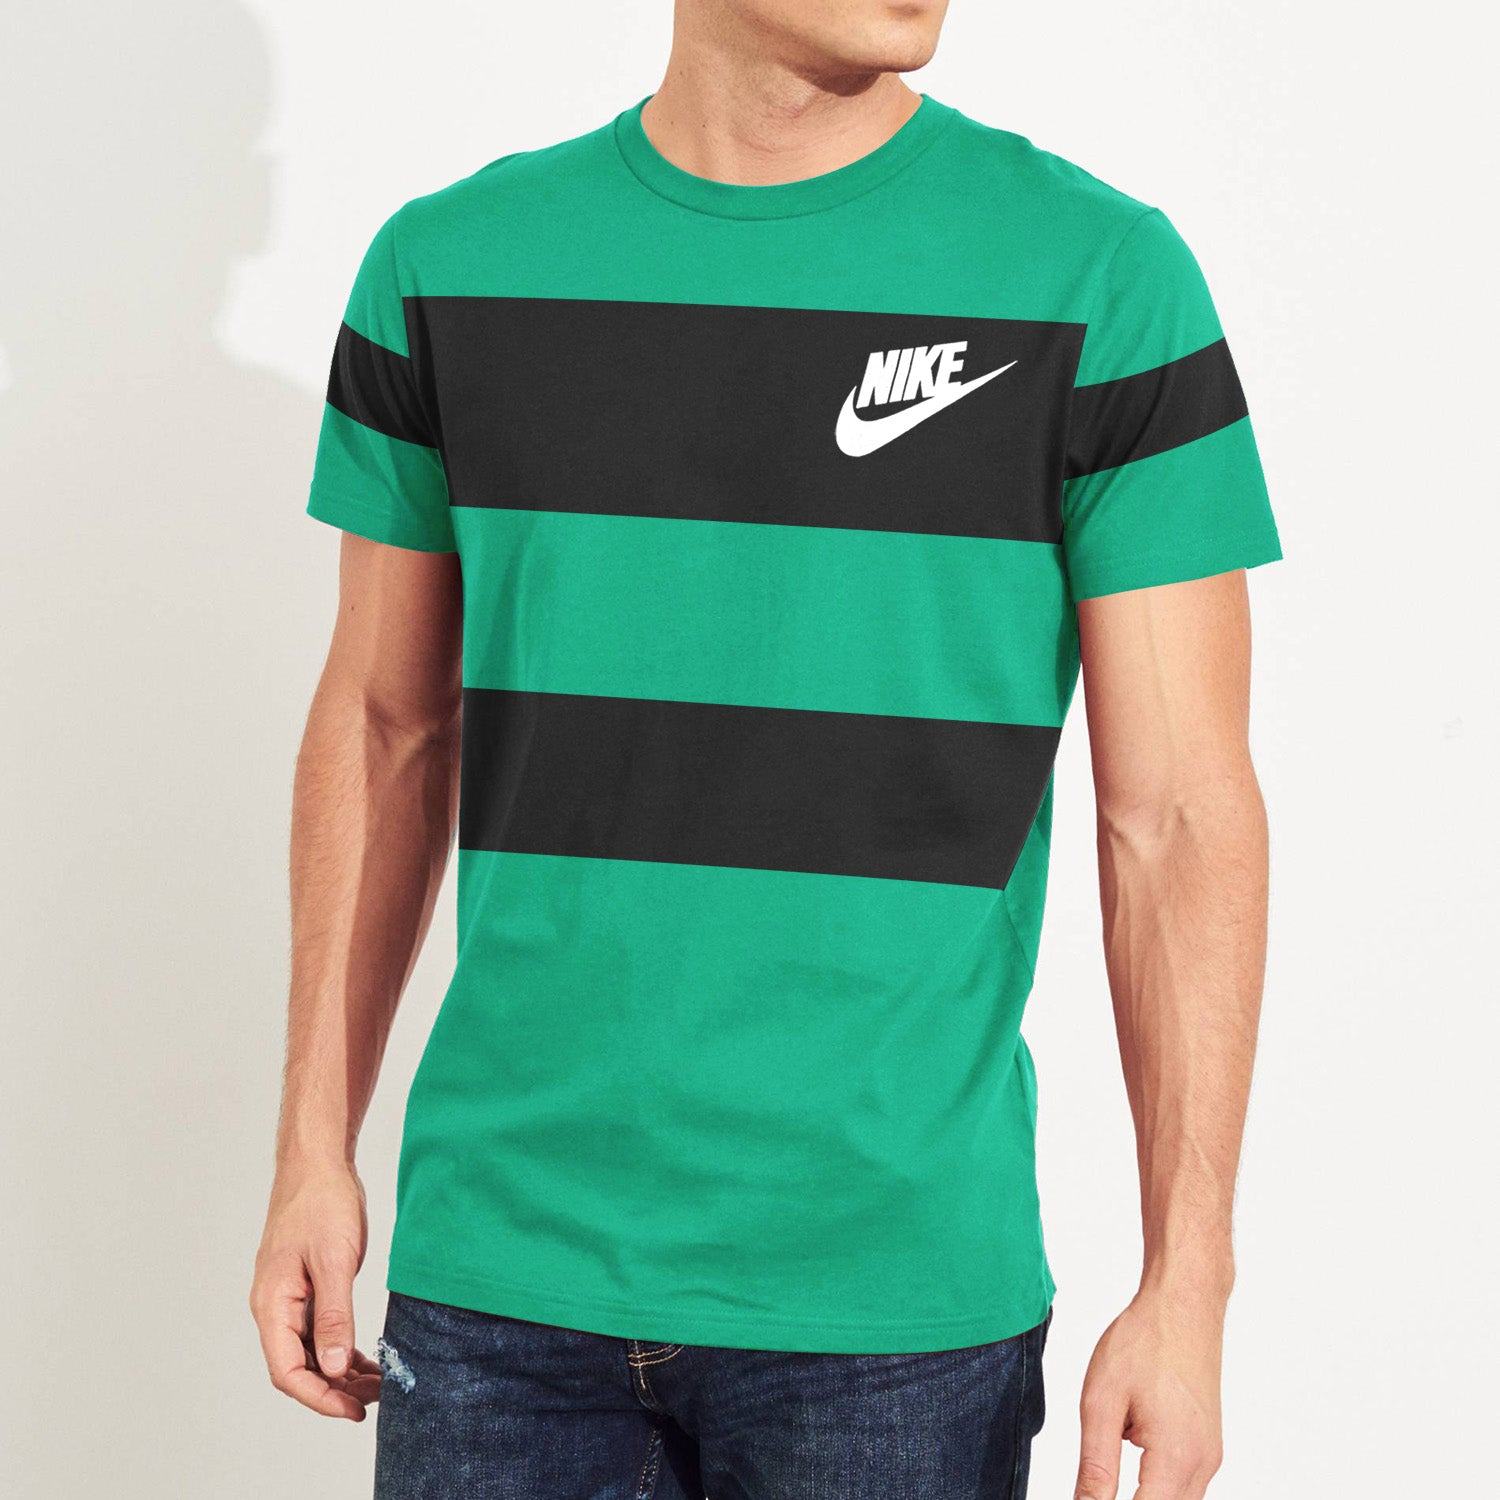 NK Summer Crew Neck Tee Shirt For Men-Cyan Green with Black Panel-BE12019